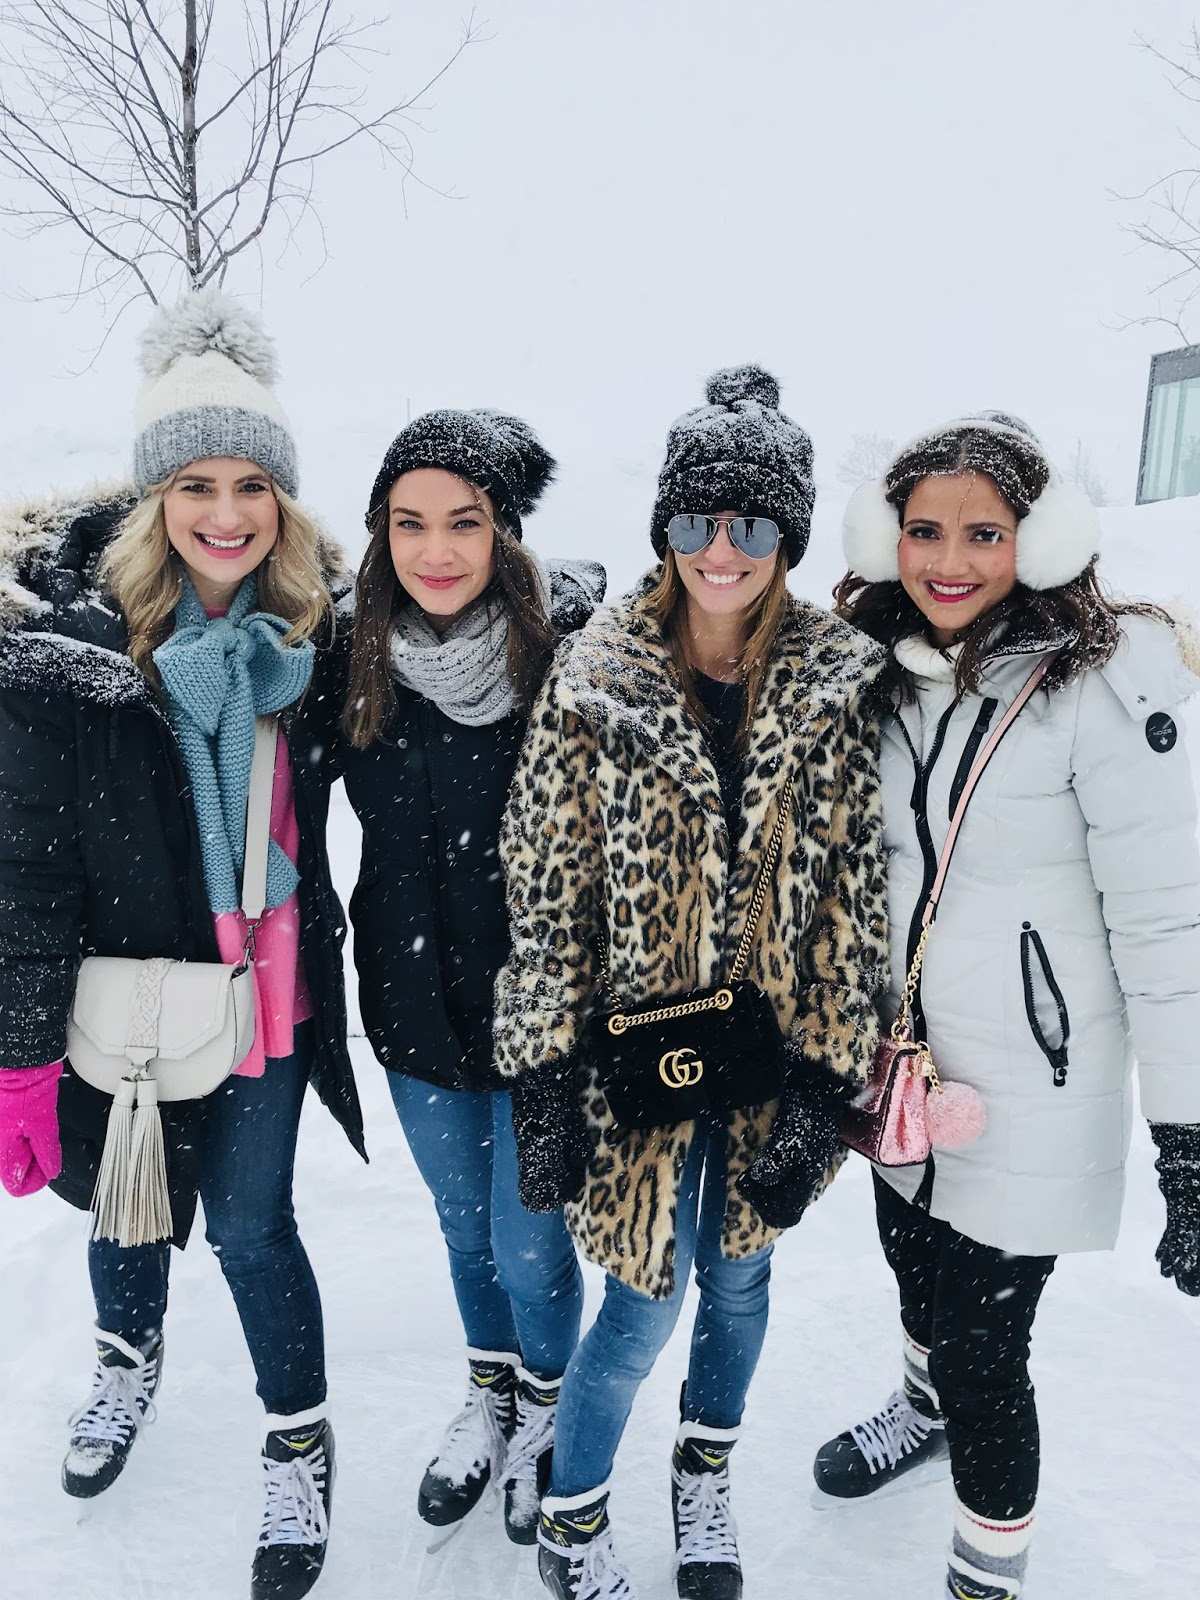 Bijuleni | How To Unwind at White Oaks Resort & Spa, Niagara on the Lake | Girls Weekend Getaway|, skating in style